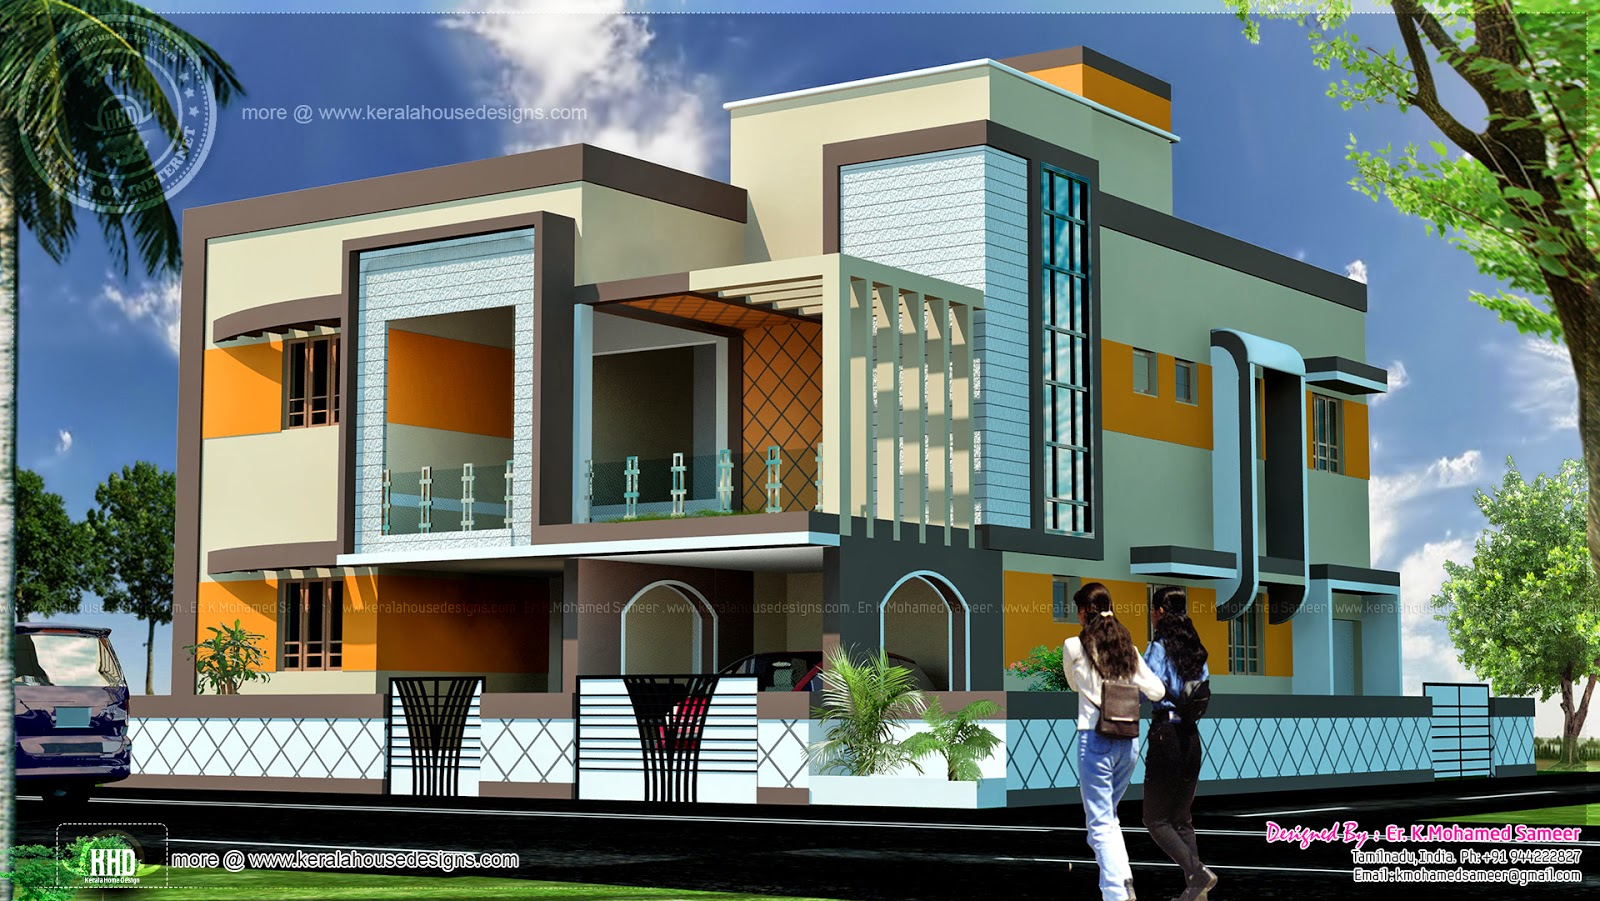 4 Bedroom Tamilnadu Style House Exterior Kerala Home Design And Floor Plans